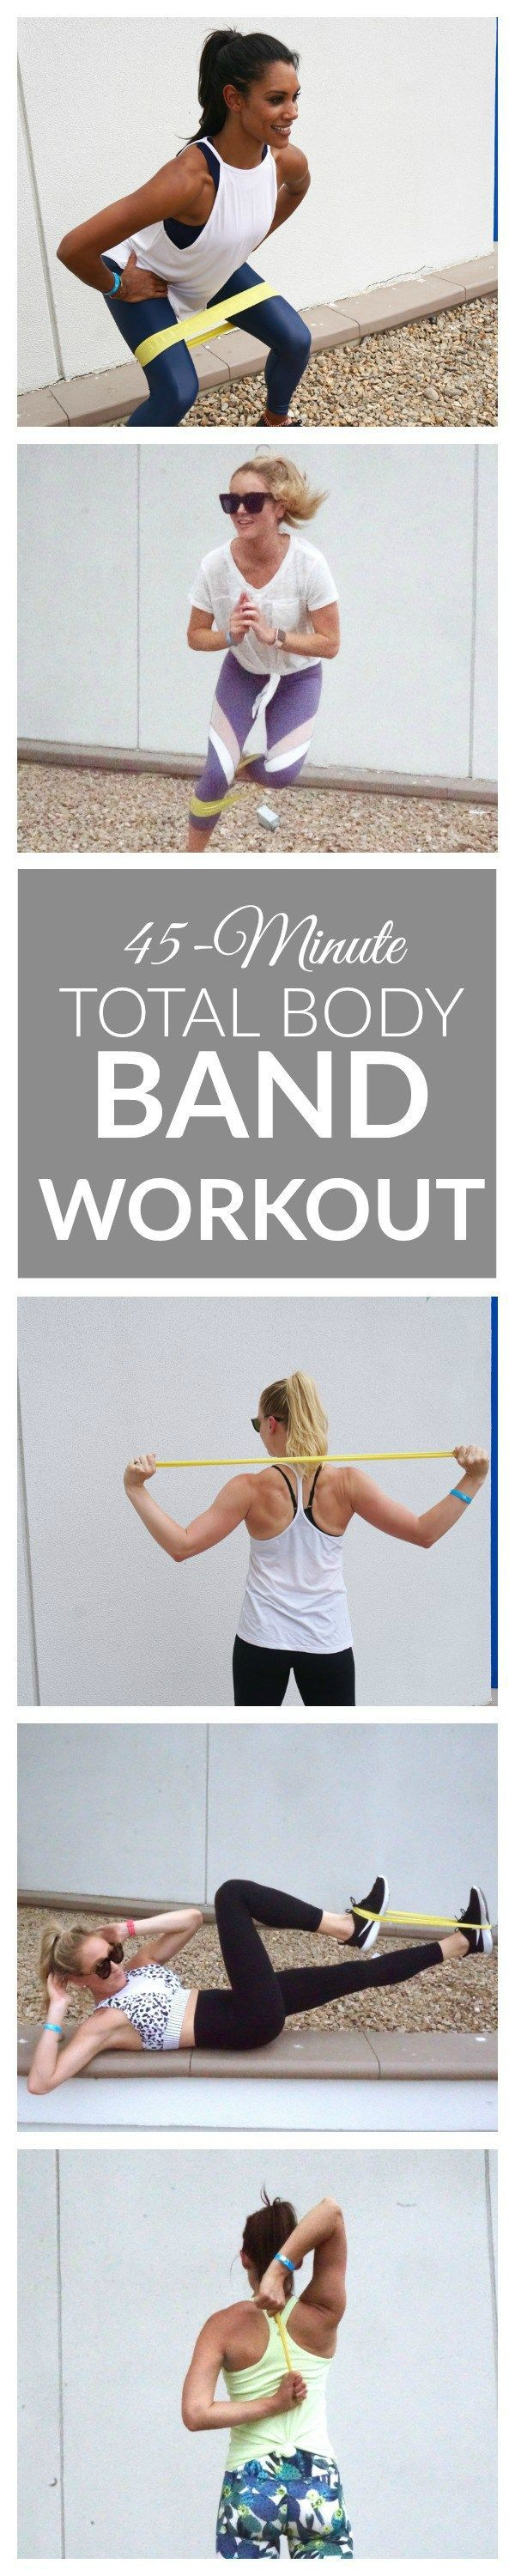 45-Minute Total Body Band Workout - this challenging band workout will tone and tighten all of your muscles using just a little exercise band. It's perfect for traveling and working out on-the-go! The 5-part circuit includes: arms workout, legs, workout, abs workout, cardio burst, and a stretching/cool-down.